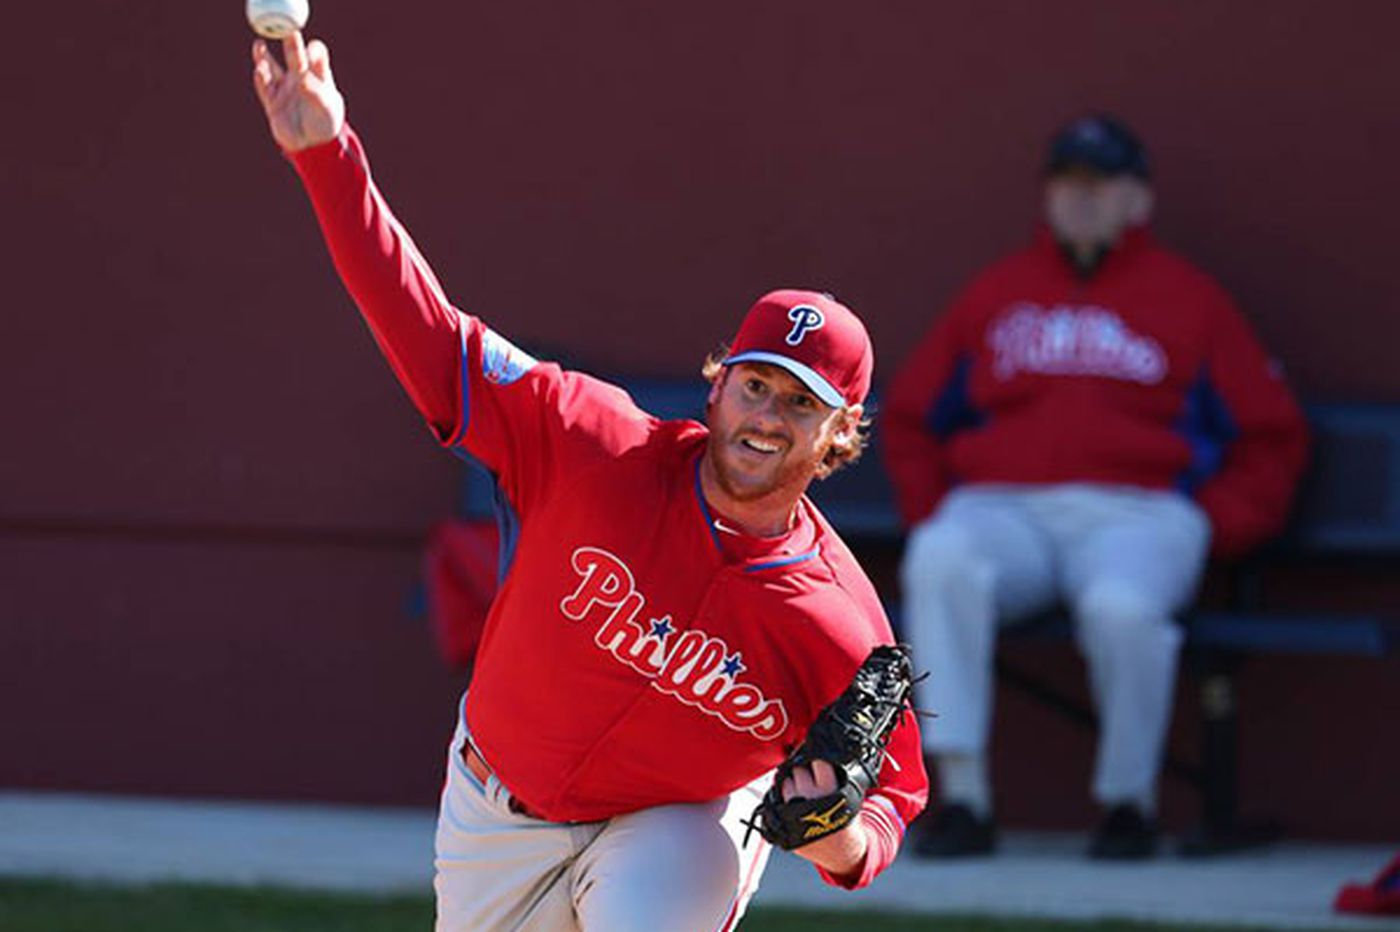 Phillies Notes: Billingsley shows progress in latest workout